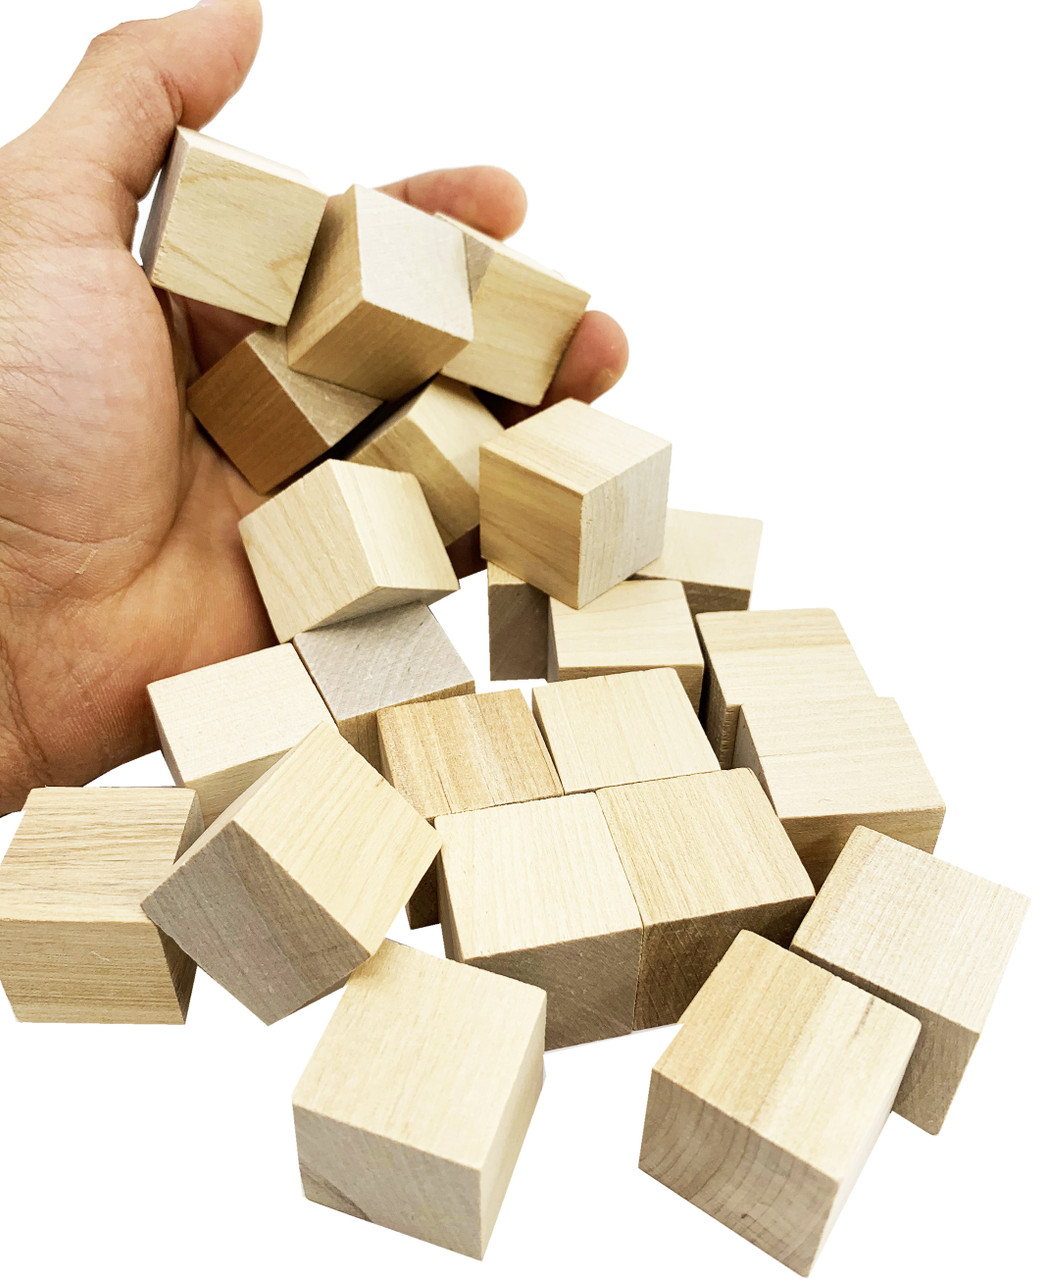 3167 Pk24 1inch Small Wood Cubes